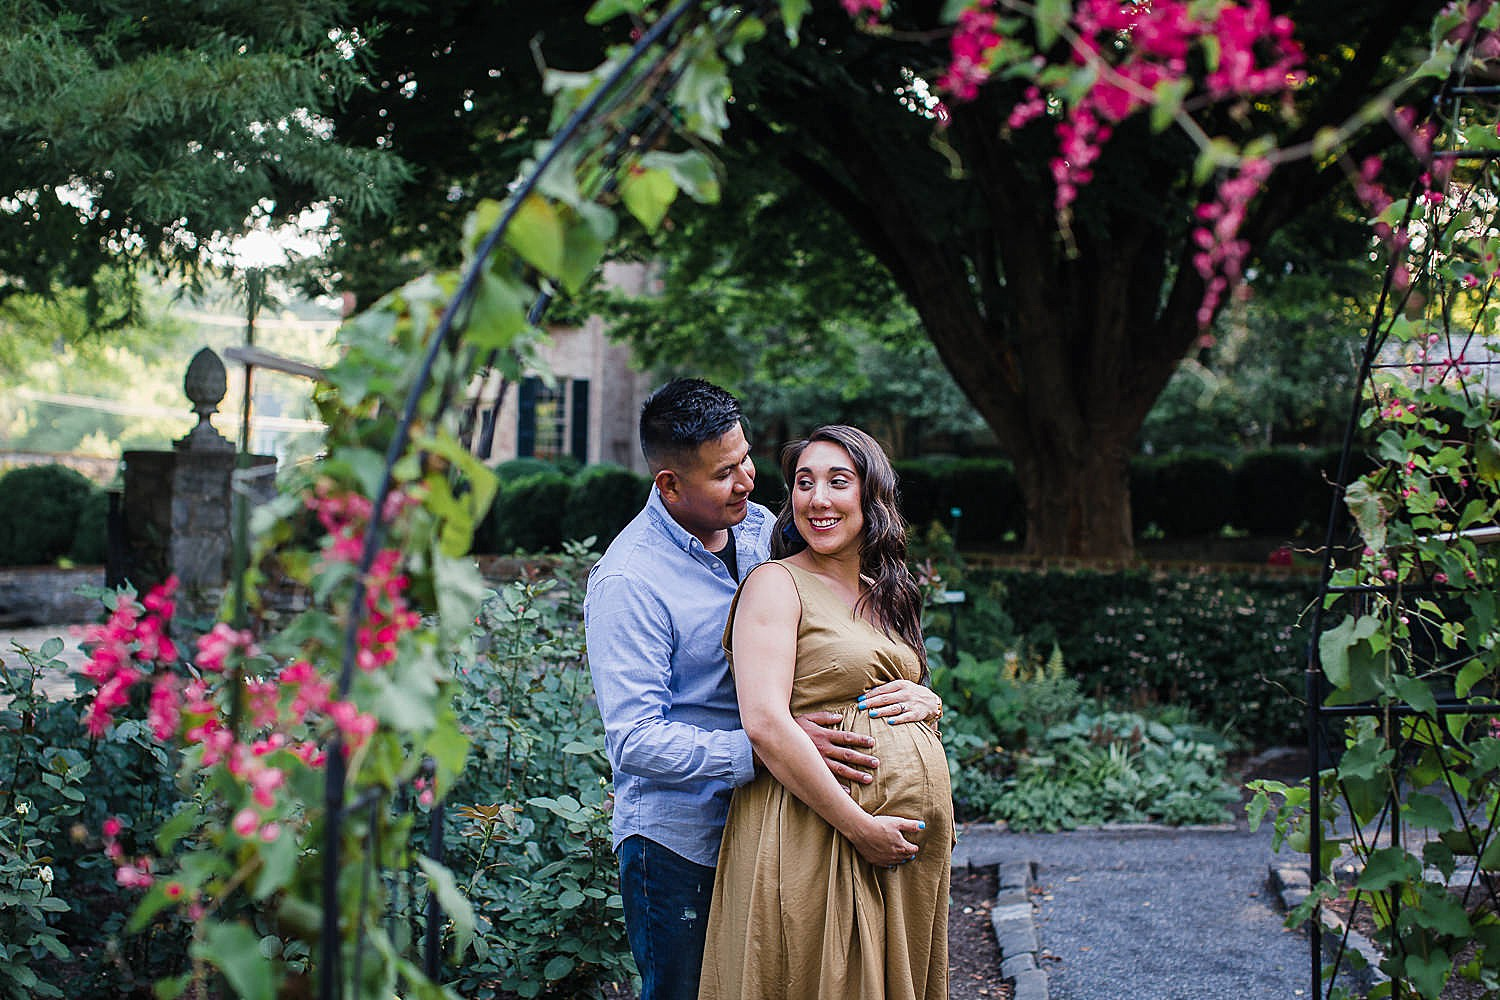 Colorful summer maternity session at the Conestoga House and Gardens in Lancaster, PA